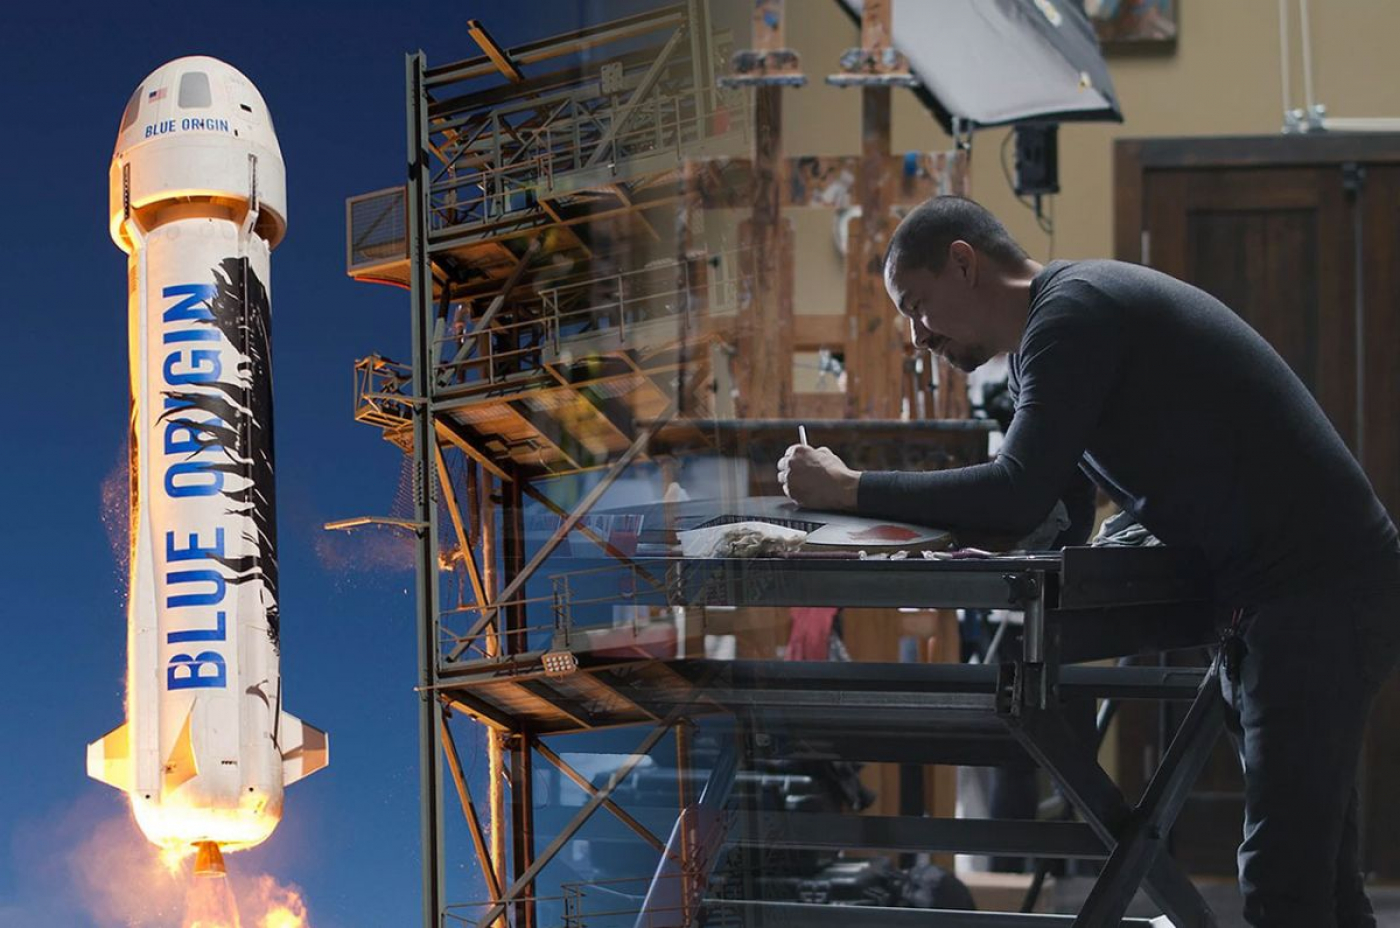 U Alums send artwork into space on exterior of Blue Origin New Shepard rocket